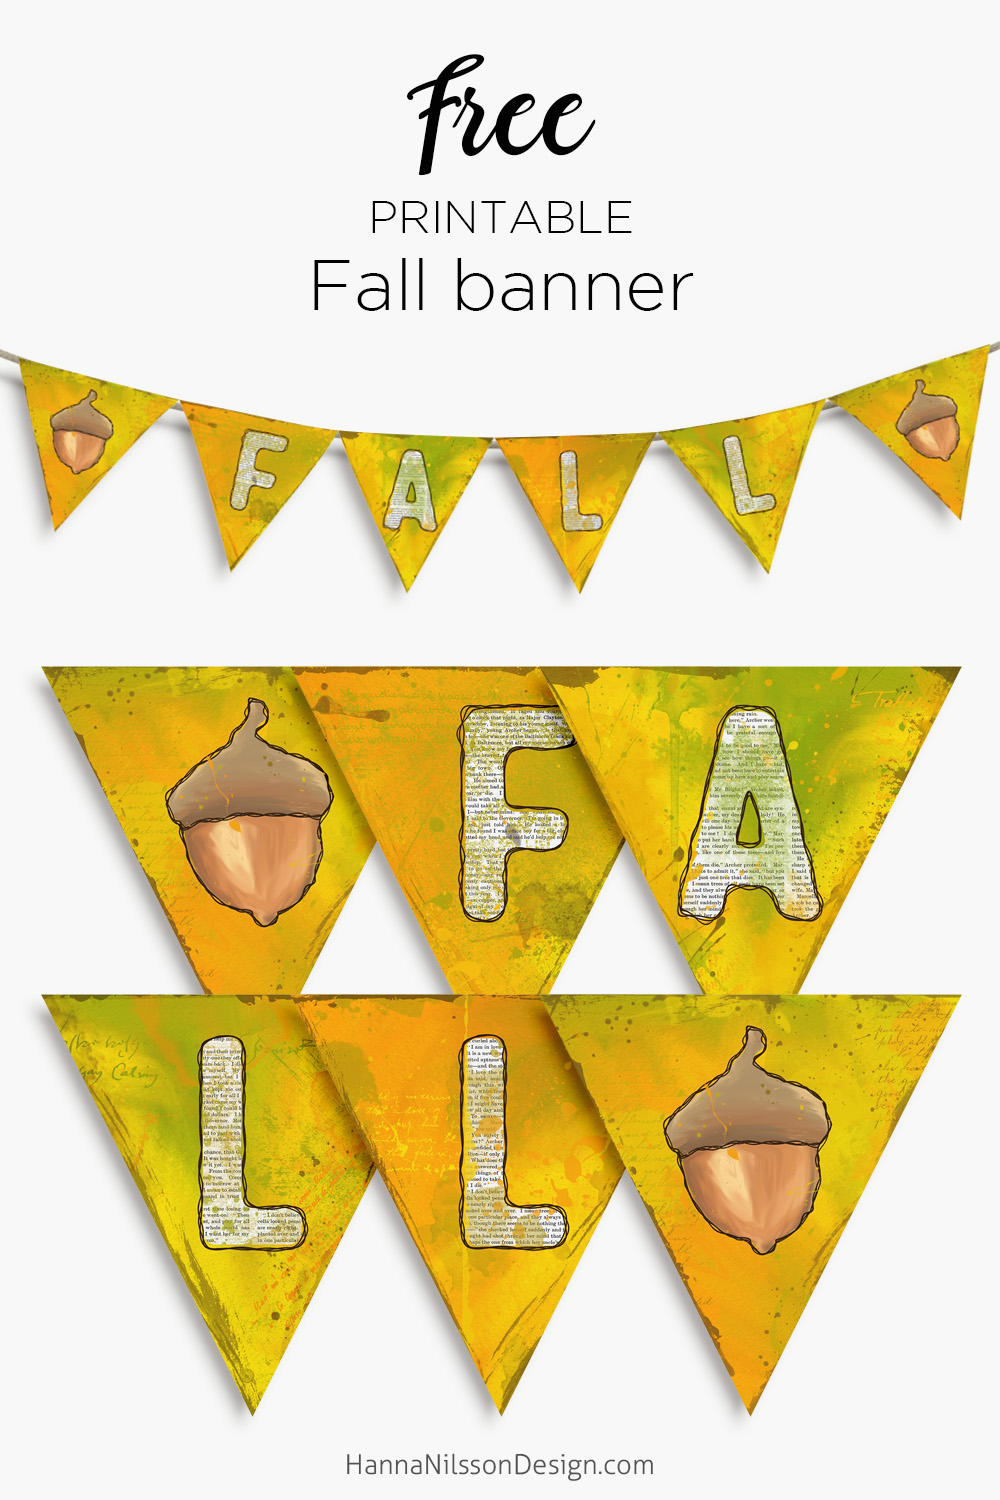 picture relating to Fall Banner Printable identify Drop banner cost-free printable dwelling decor Hanna Nilsson Style